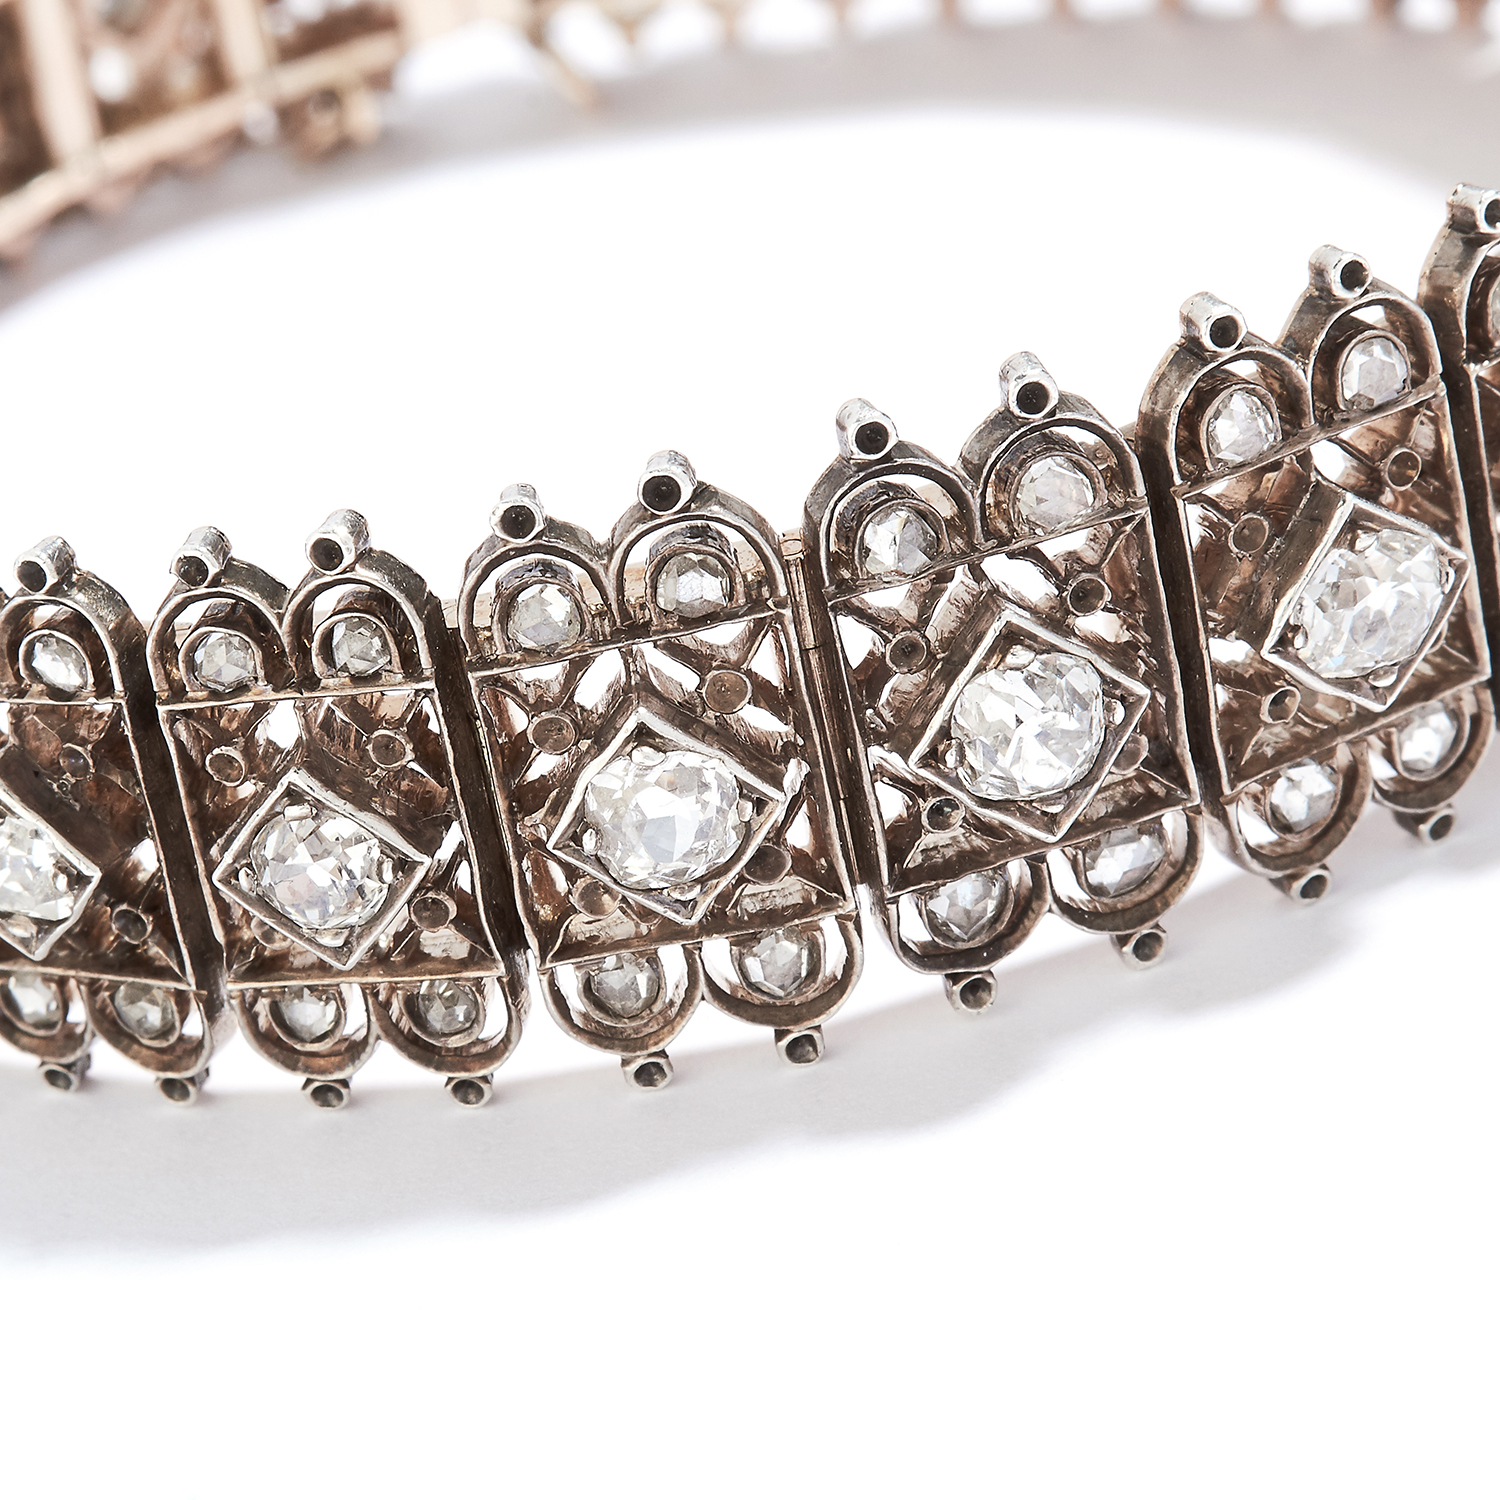 ANTIQUE DIAMOND BRACELET in high carat yellow gold, set with a row of old cut diamonds in detailed - Image 3 of 3